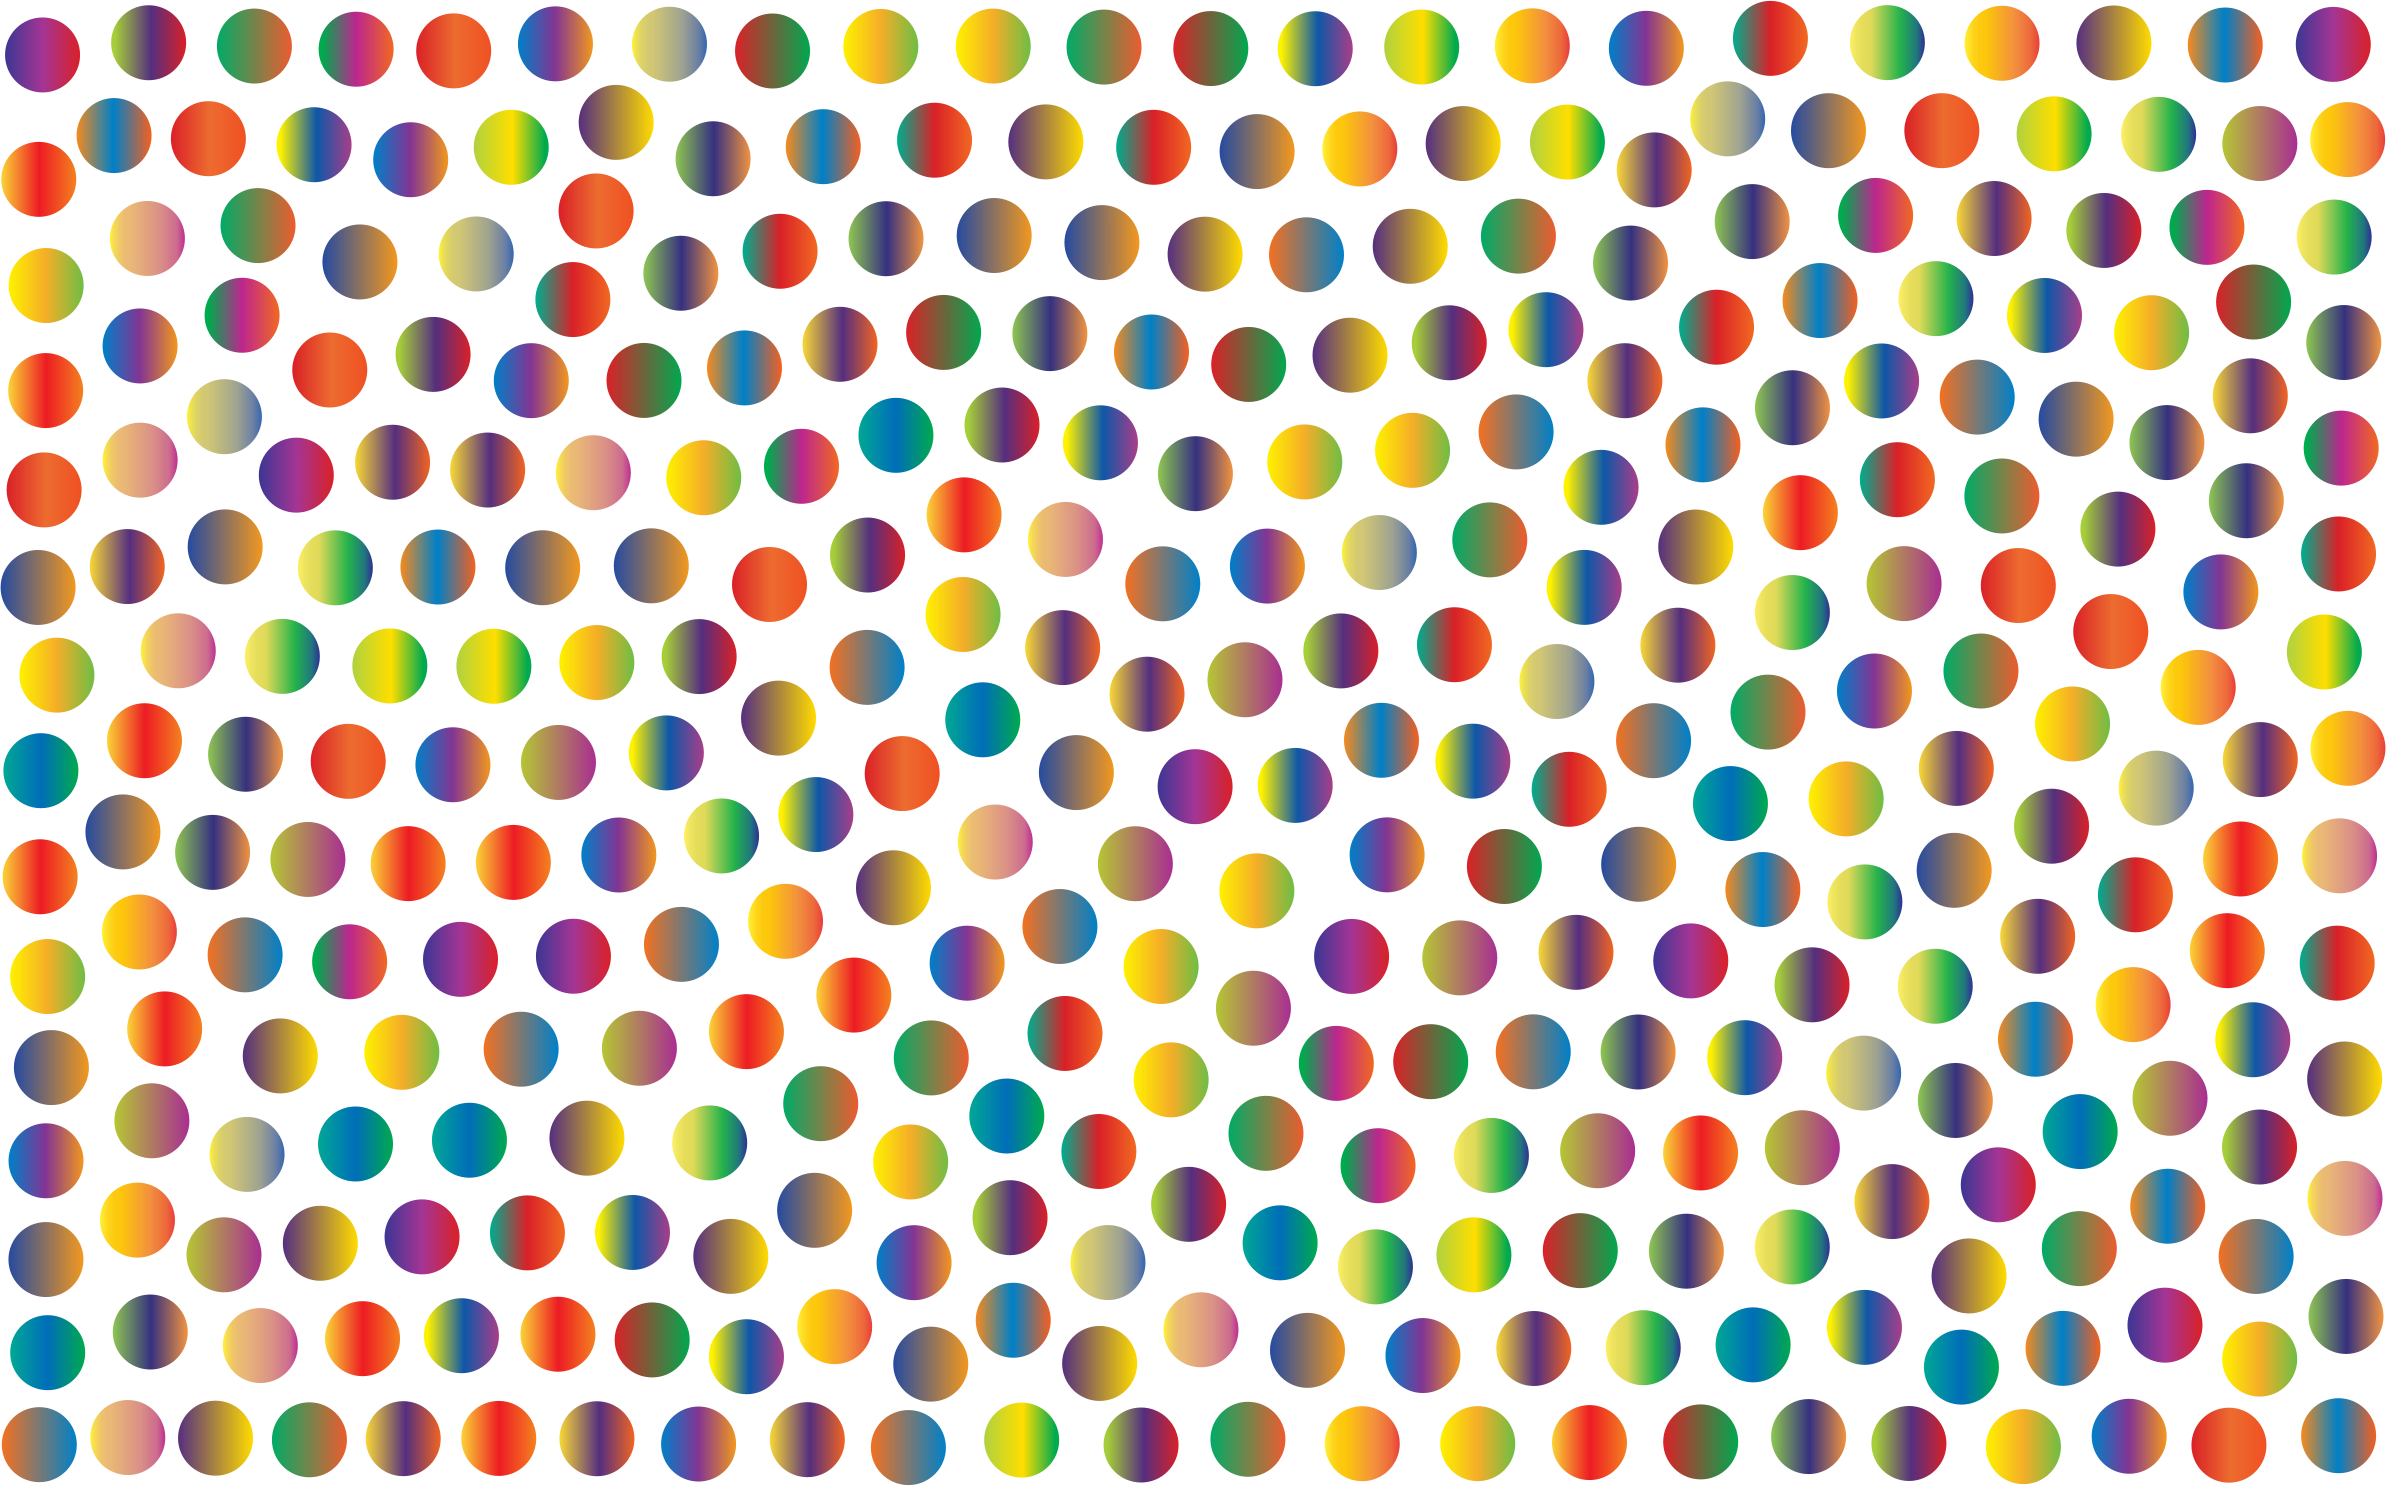 Polka dot background png. Prismatic dots no icons